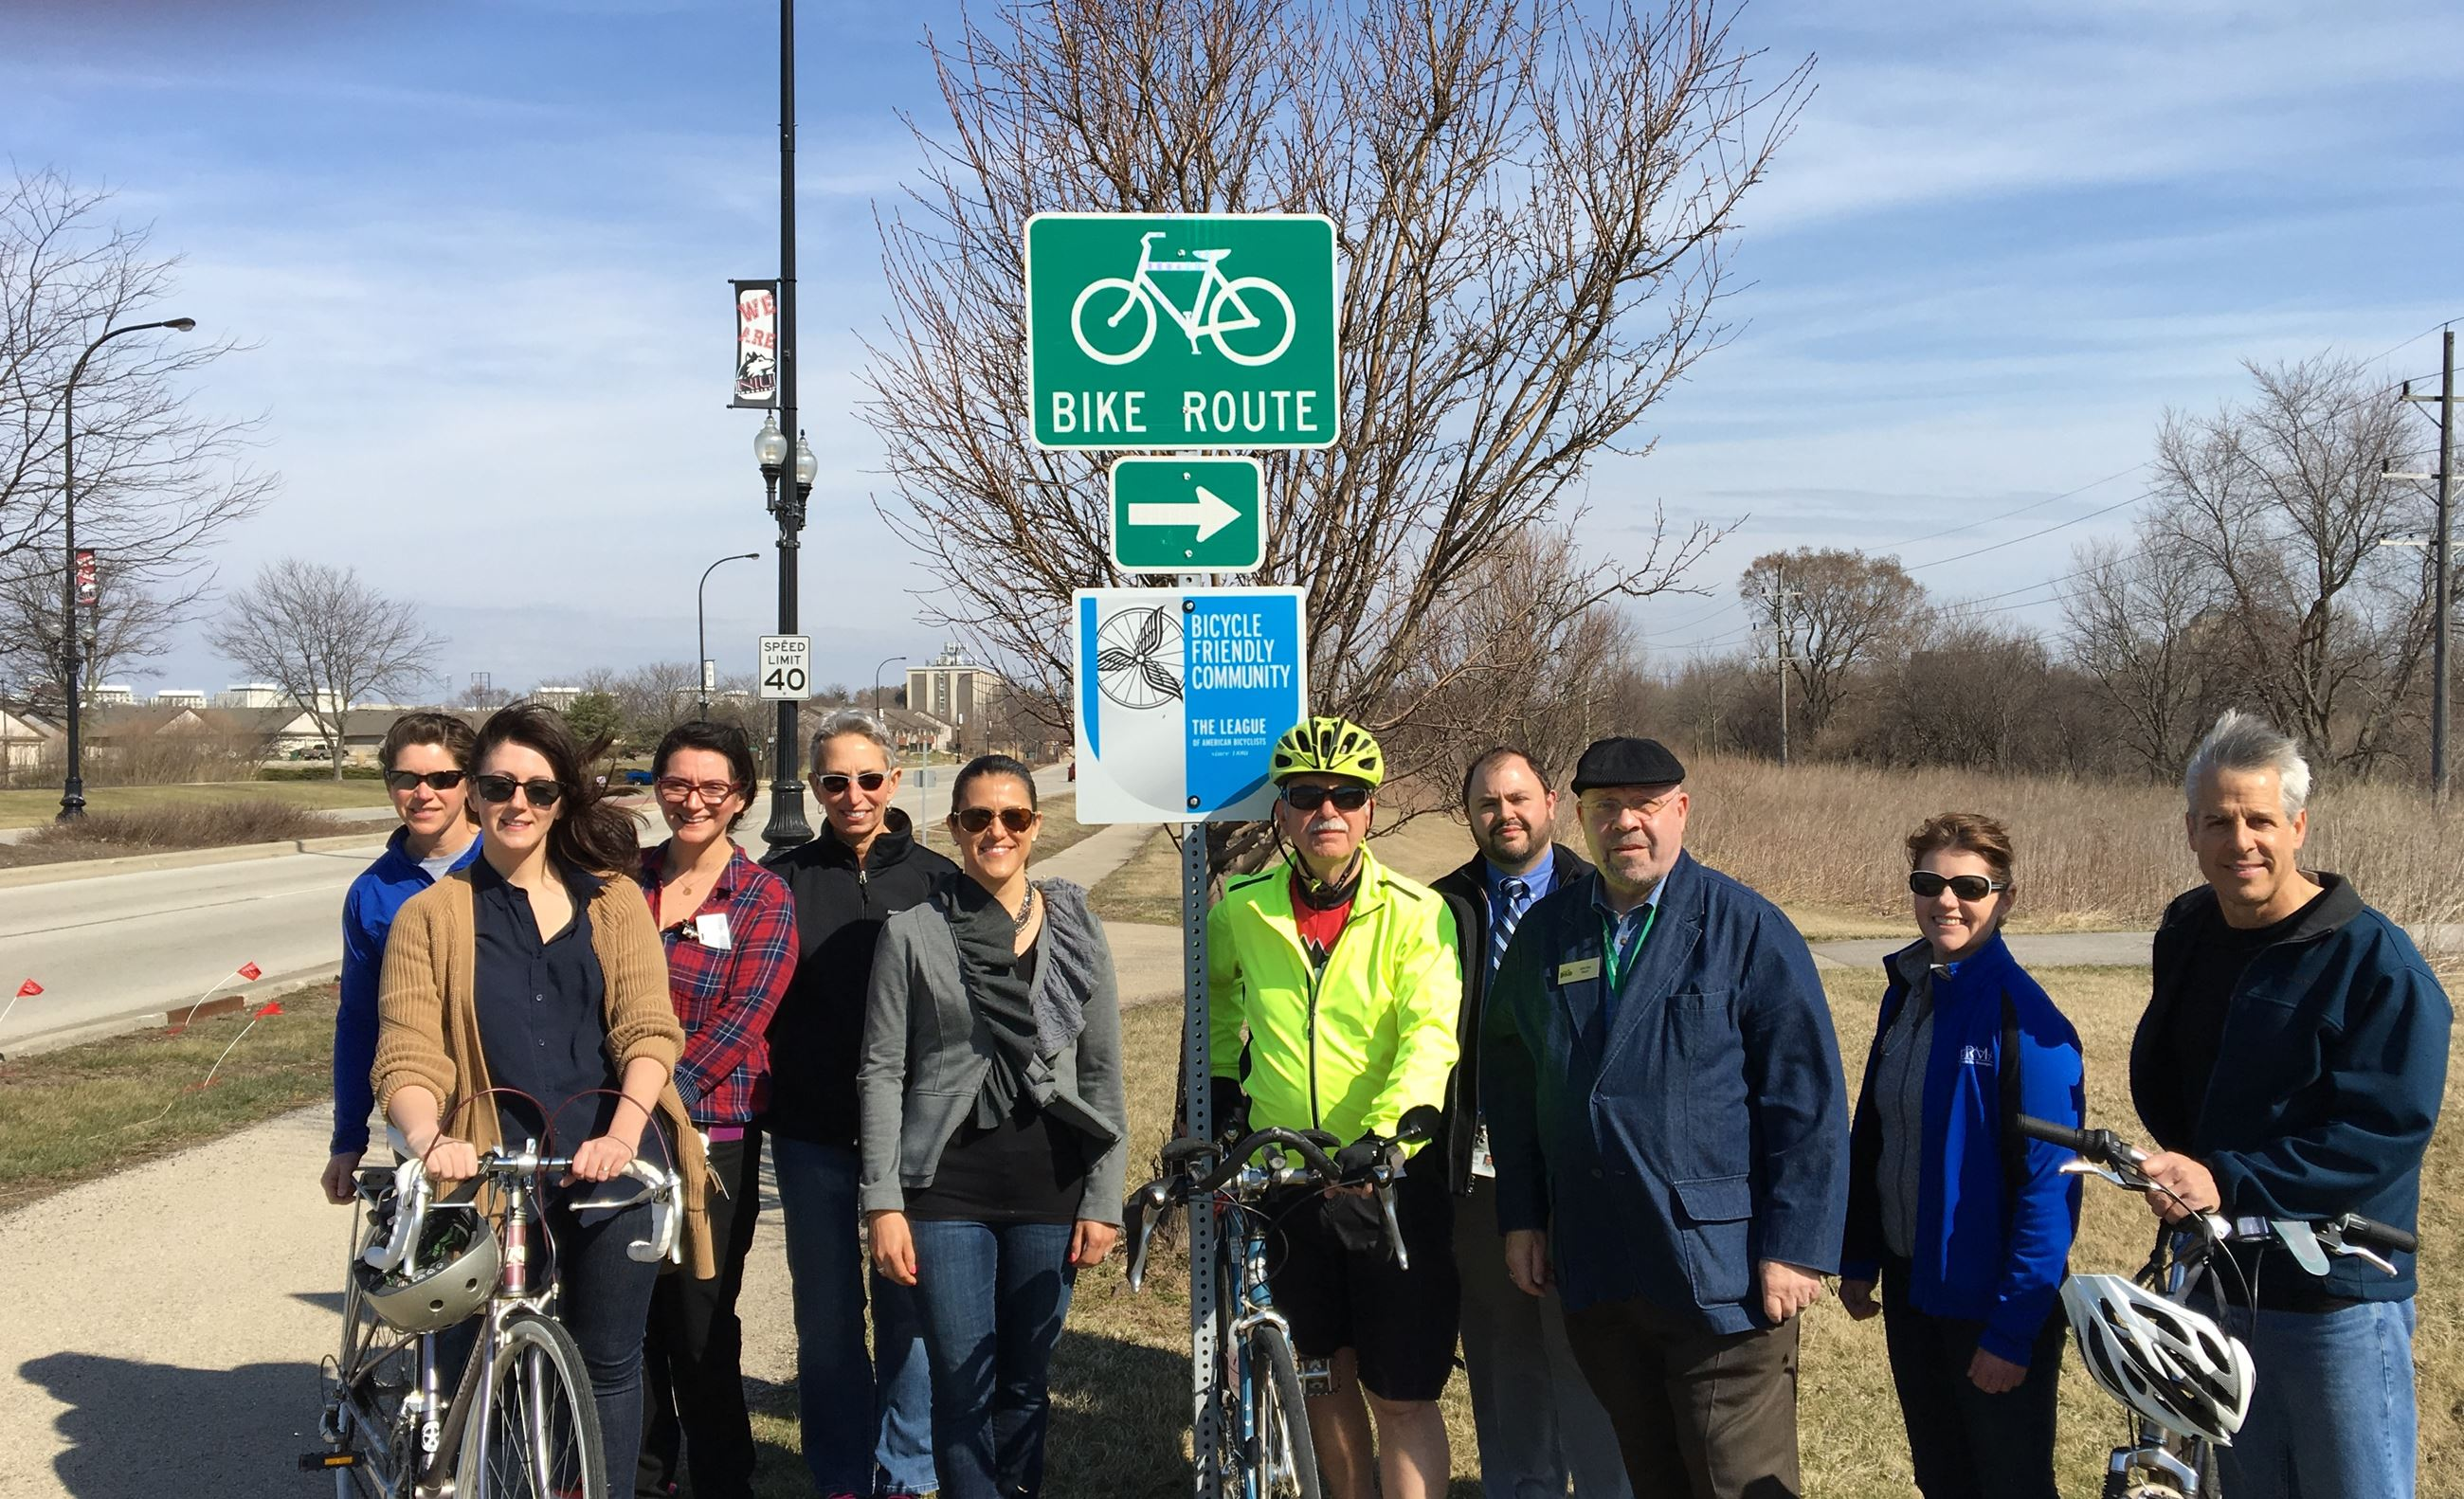 Bicycle Friendly Sign Group Picture